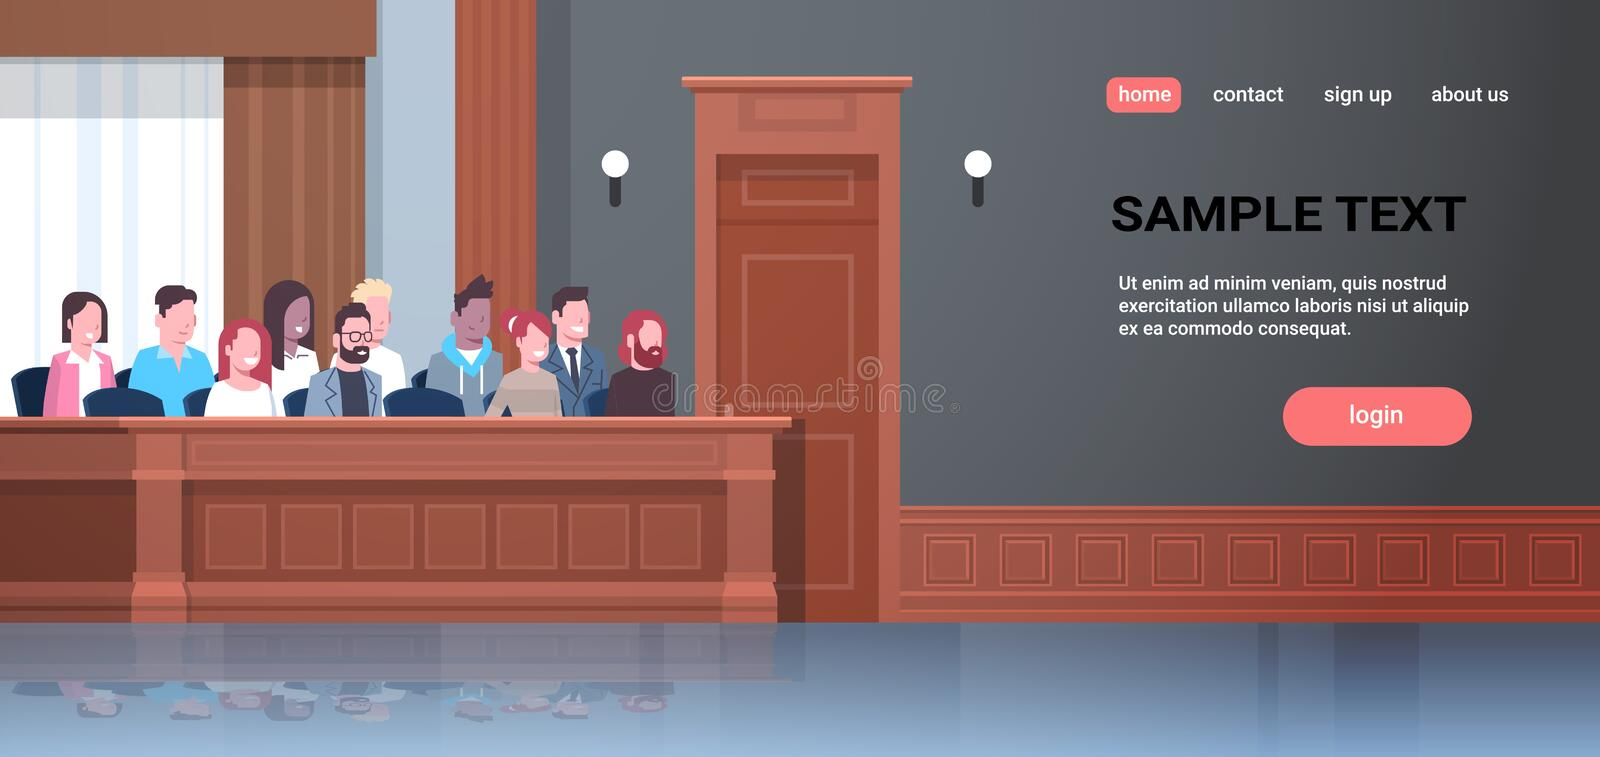 Men women sitting jury box court trial session mix race people in judging process modern courtroom interior portrait. Horizontal copy space vector illustration stock illustration